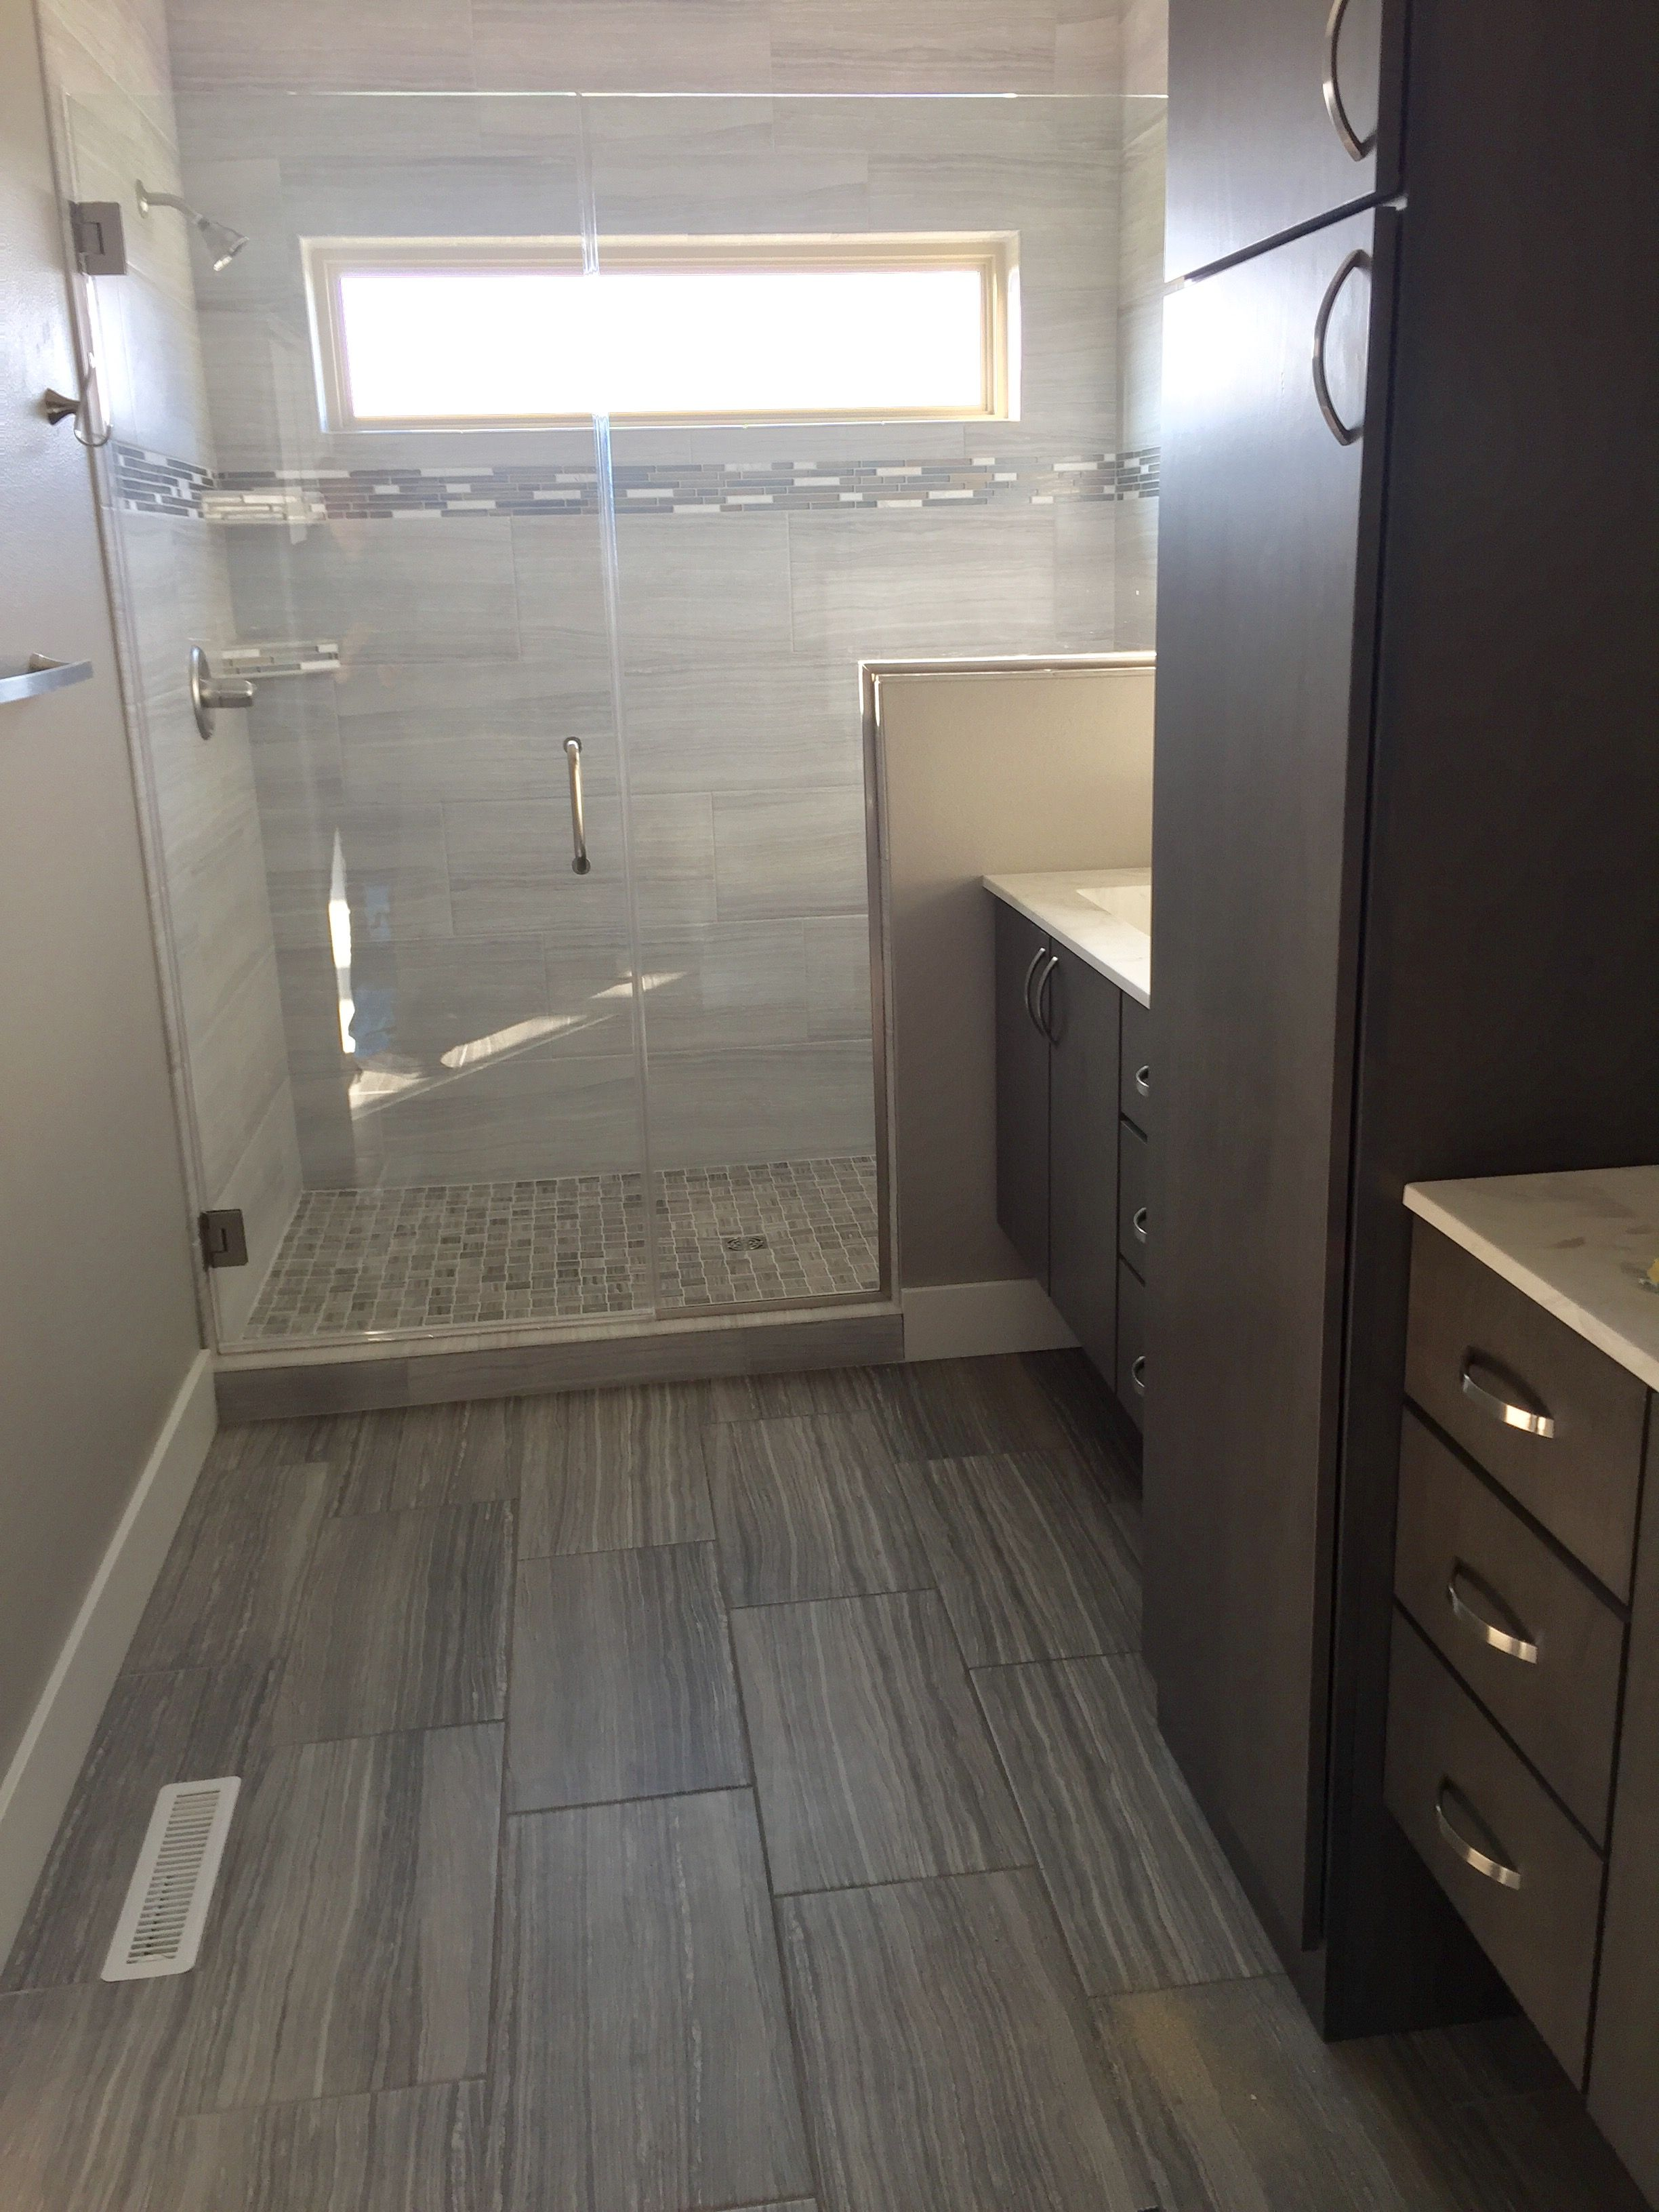 Dark gray 12x24 floor tile transitioning into a light white gray